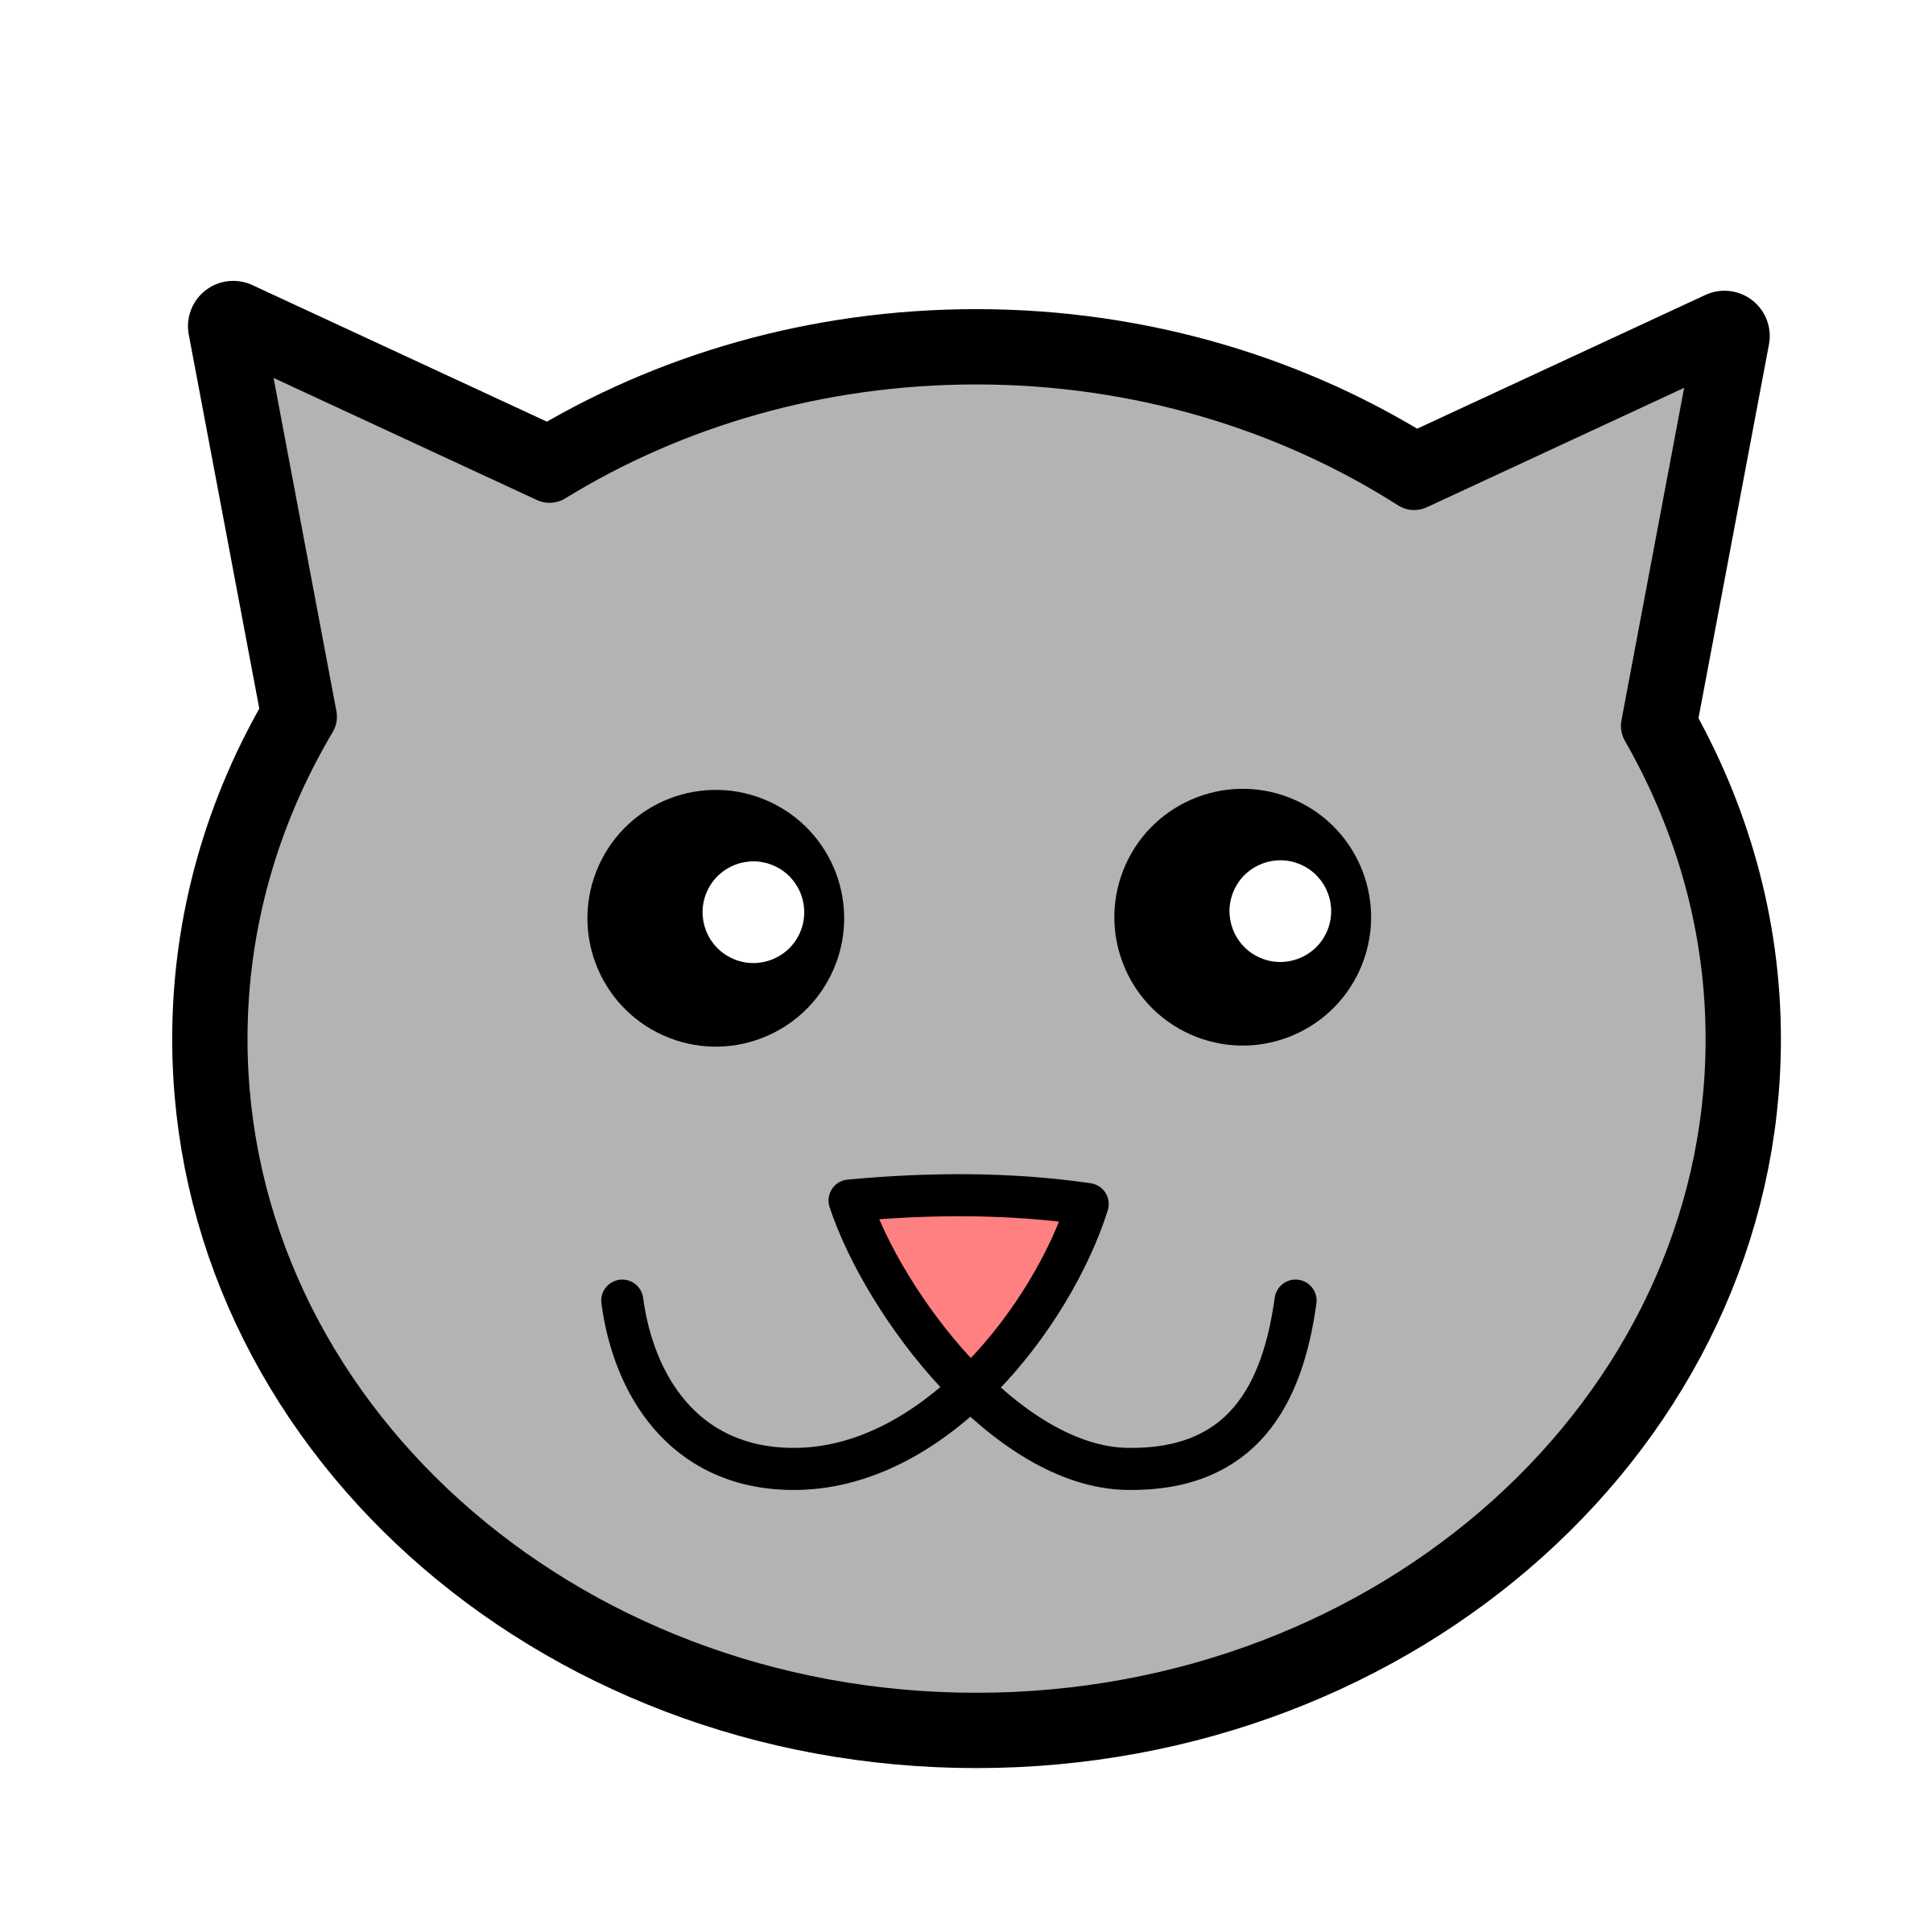 Cat face png clipart graphic library library Clipart - Kitty icon graphic library library